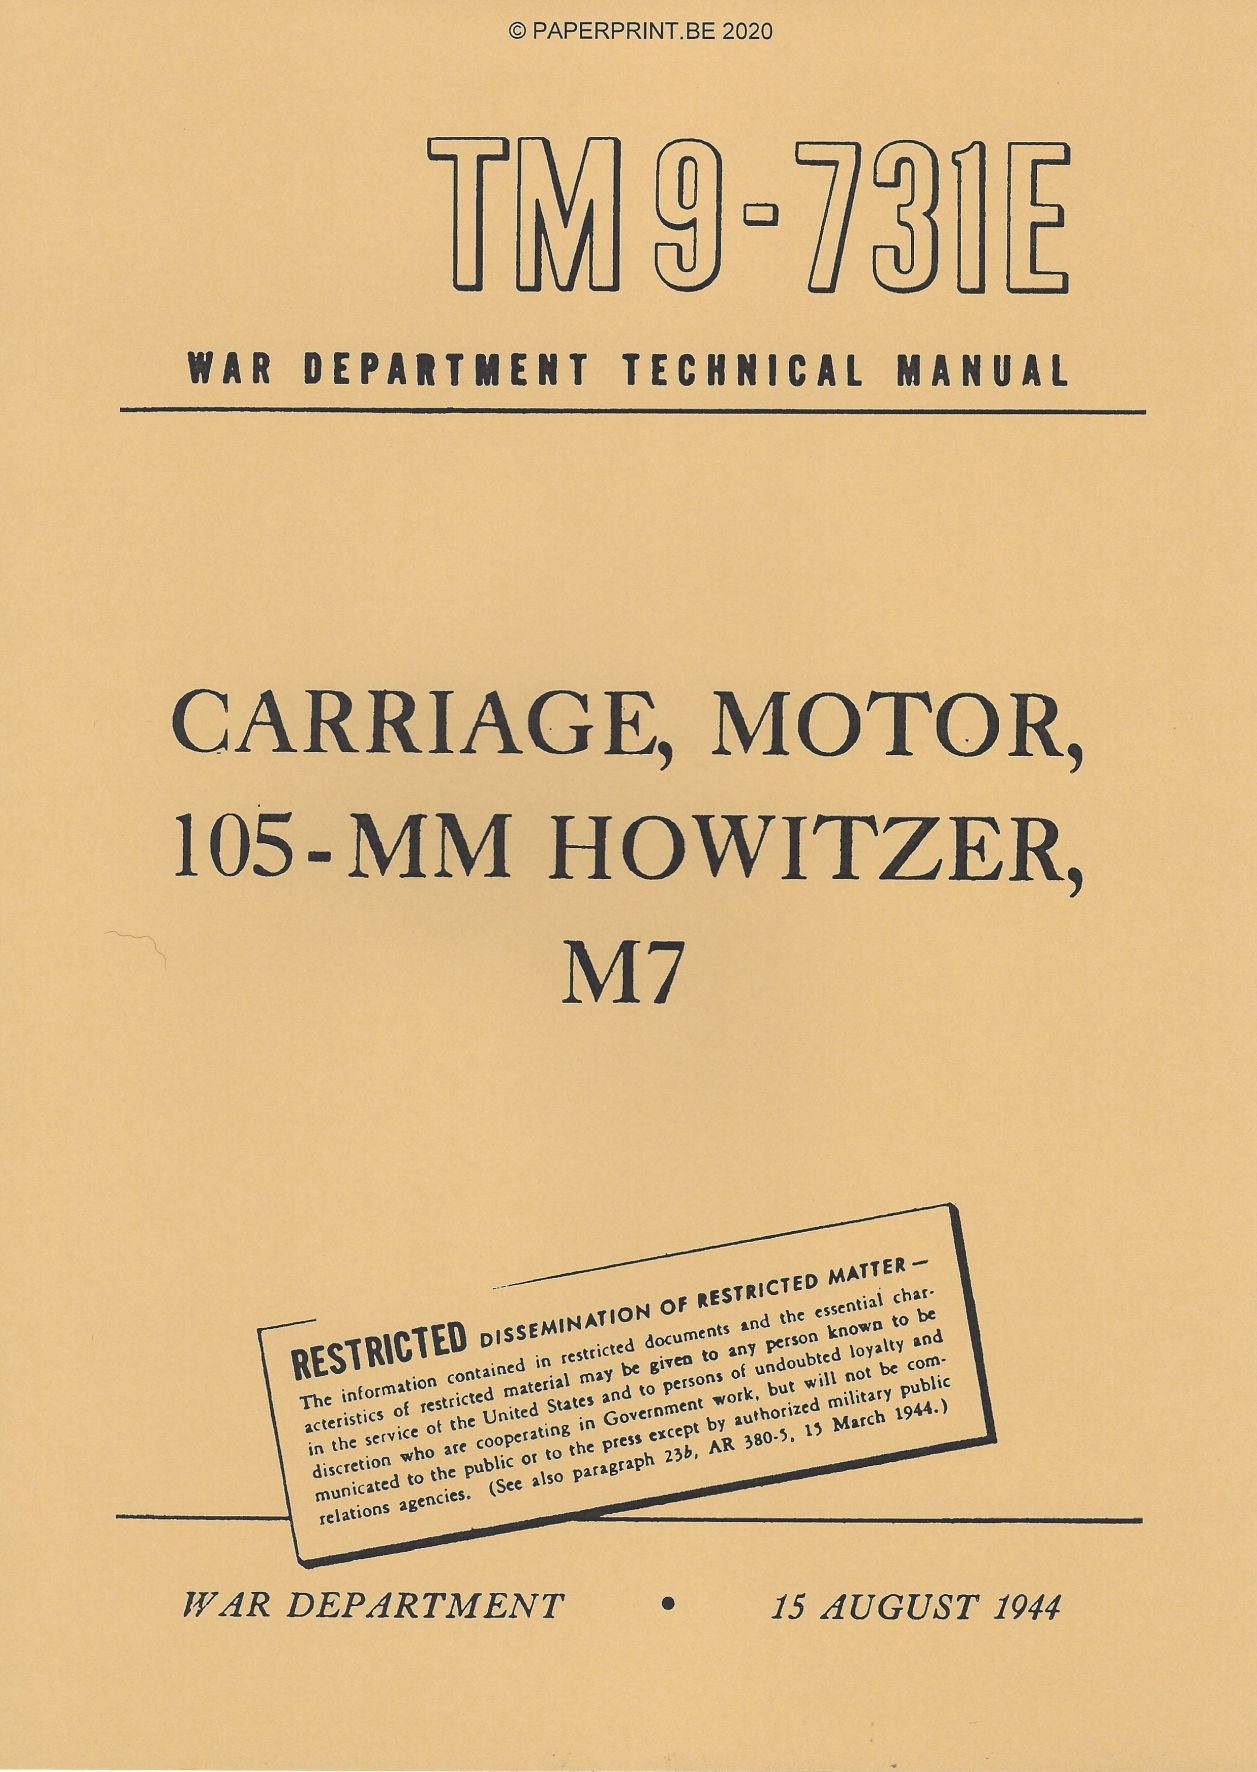 TM 9-731E US CARRIAGE, MOTOR, 105-MM HOWITZER, M7 (PRIEST)